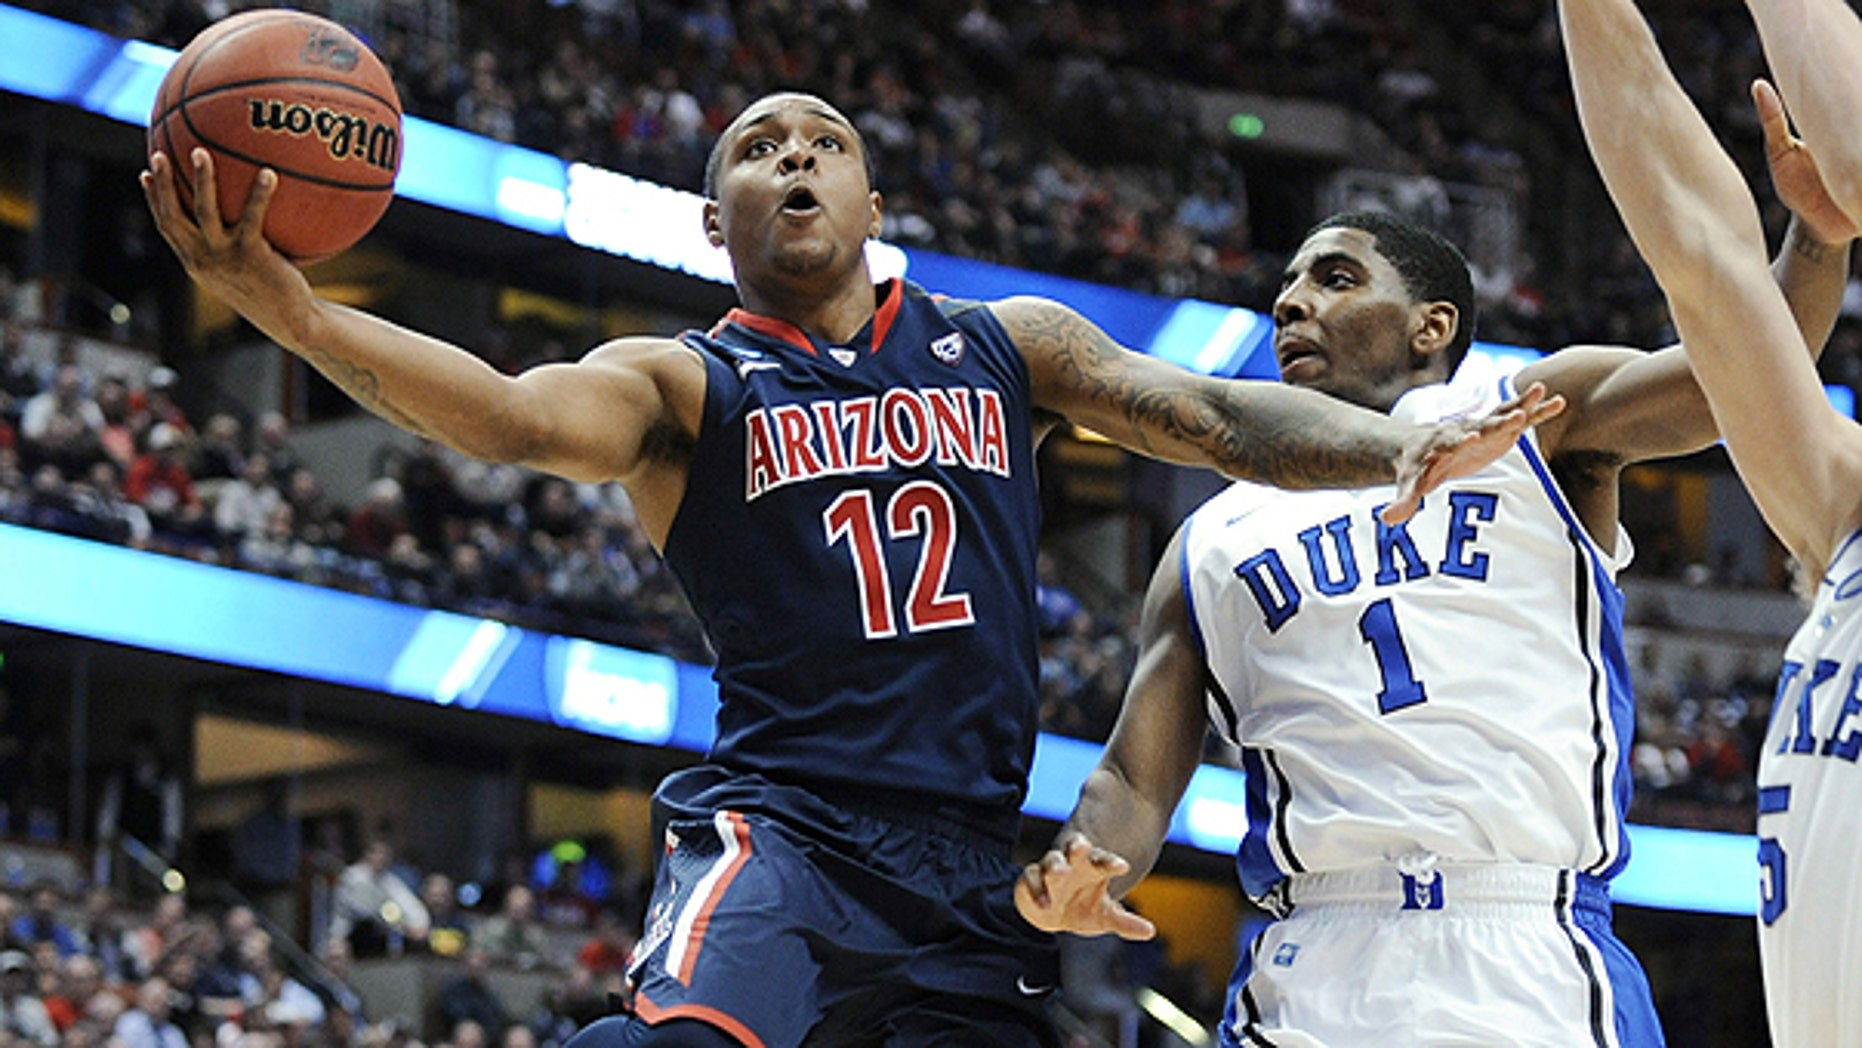 March 24: Arizona's Lamont Jones (12) drives past Duke's Kyrie Irving (1) during the second half of a West regional semifinal in the NCAA college basketball tournament in Anaheim, California.